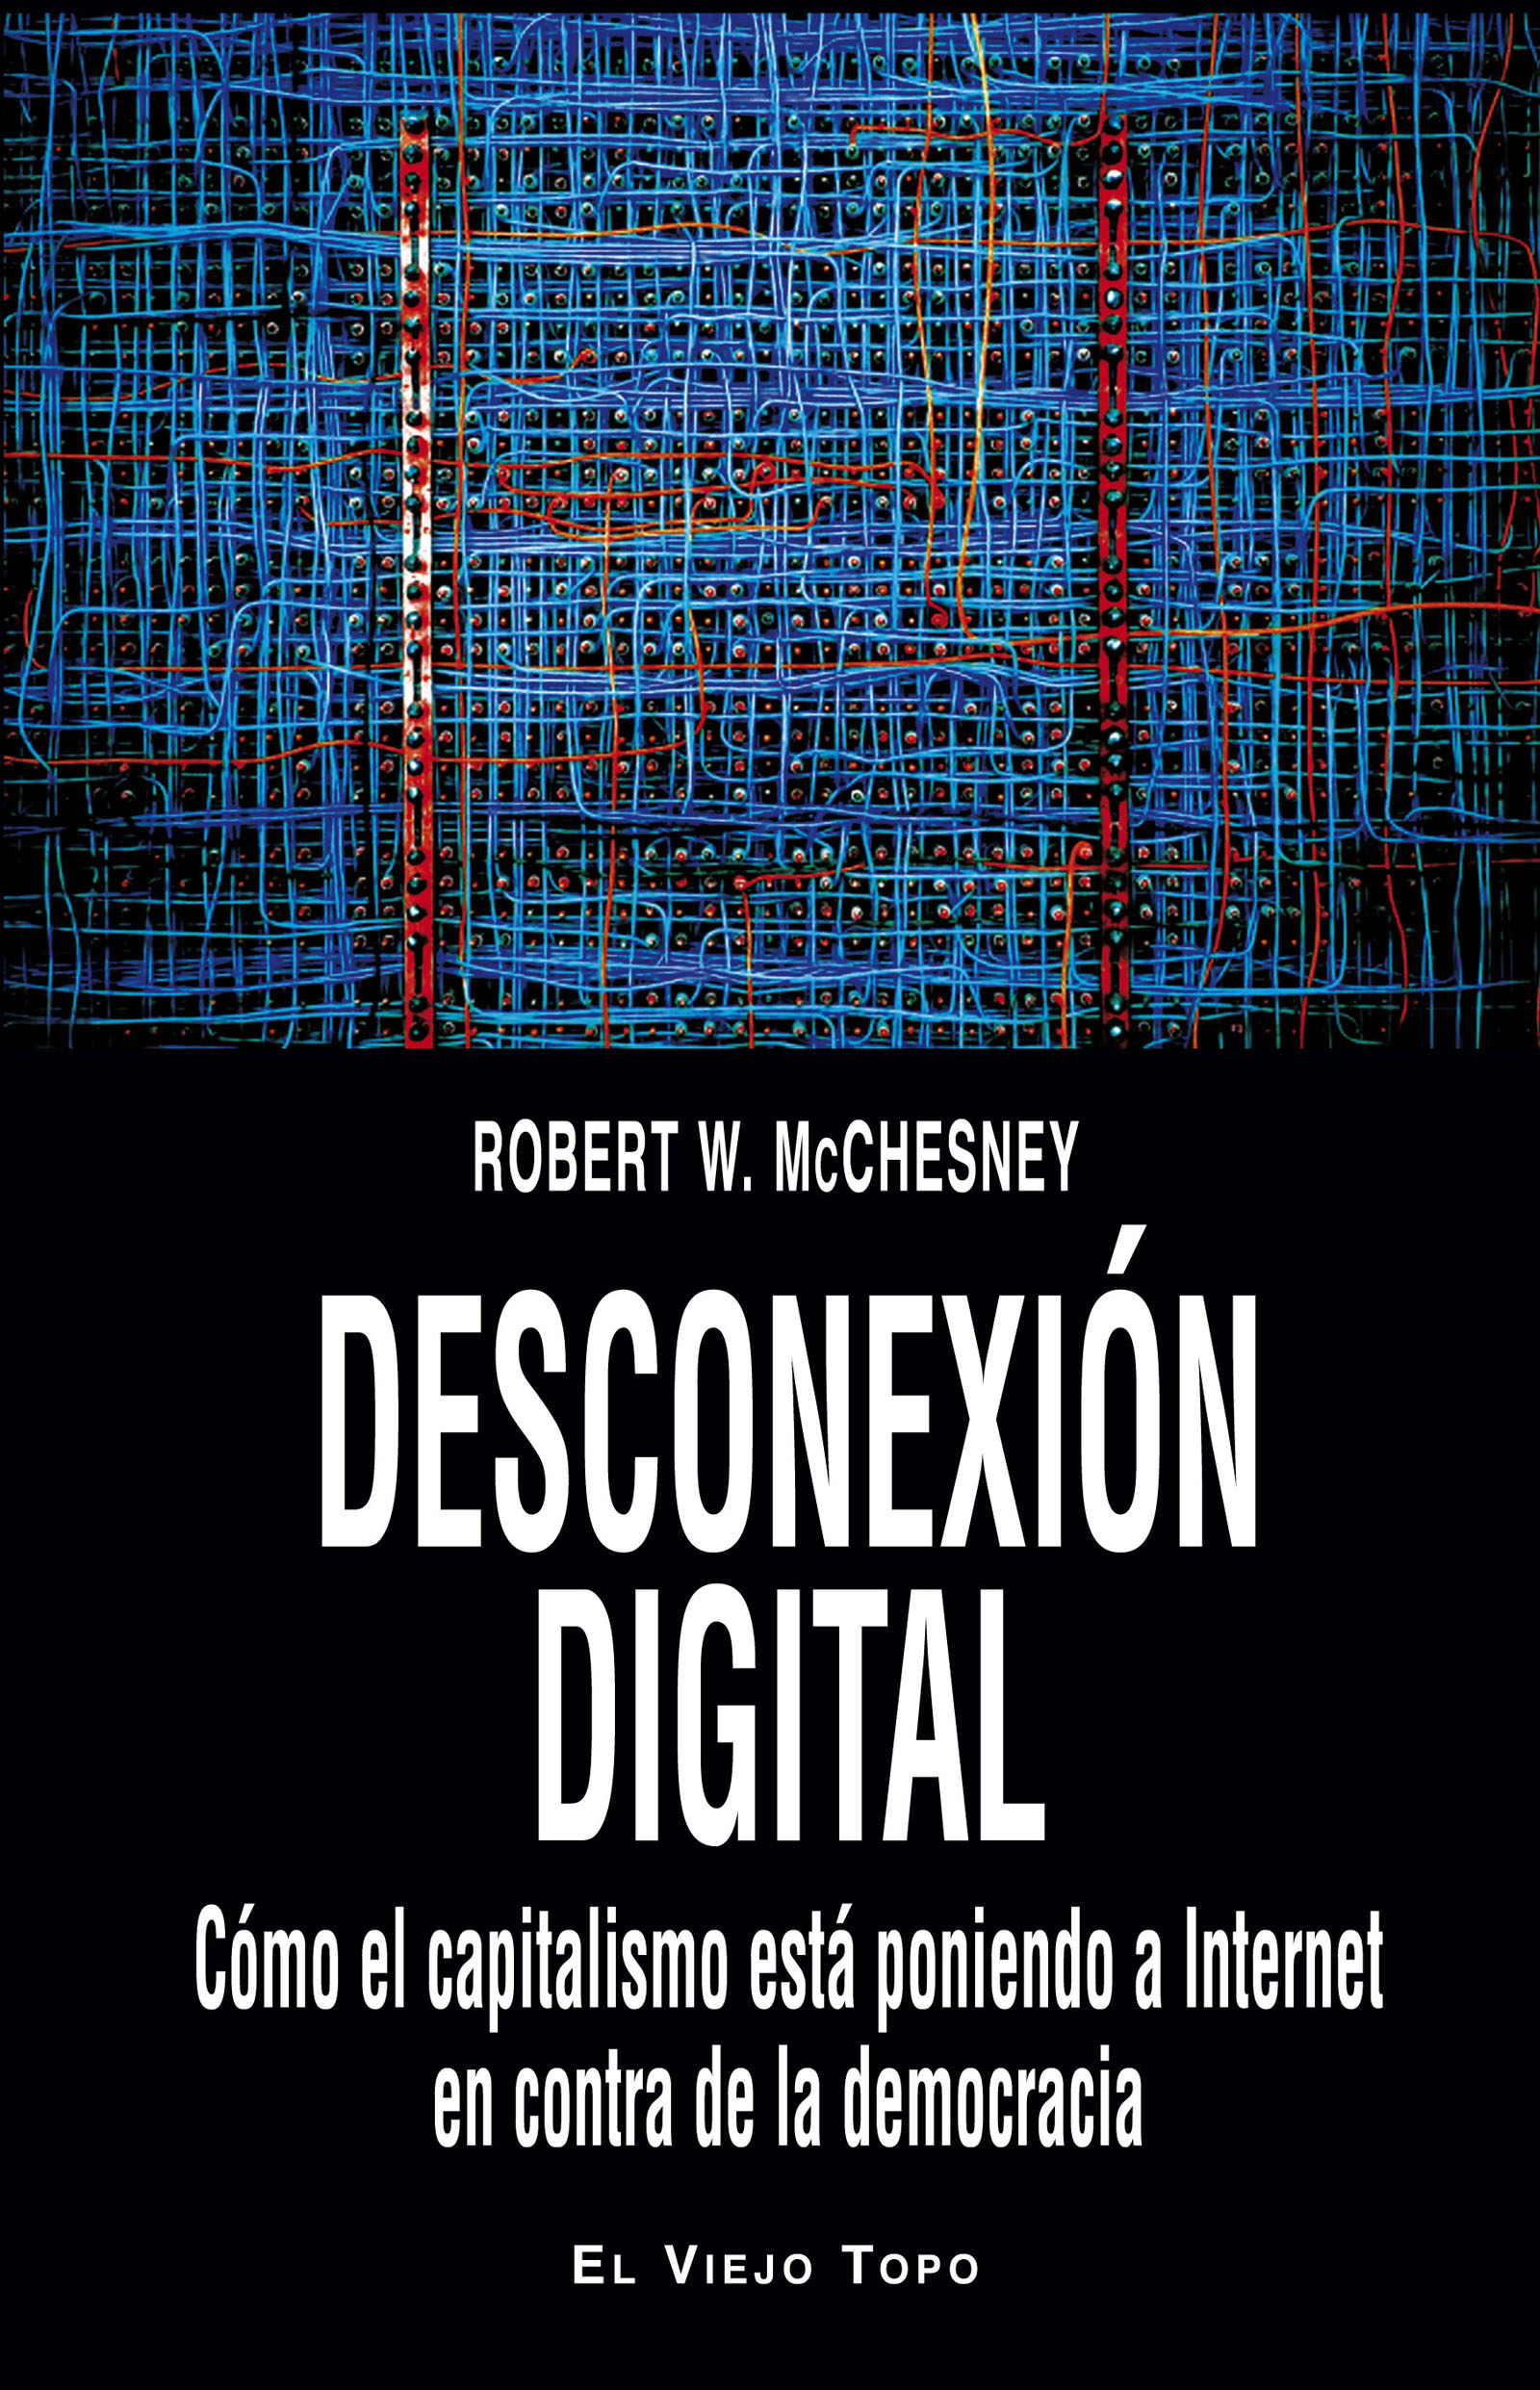 Desconexión digital